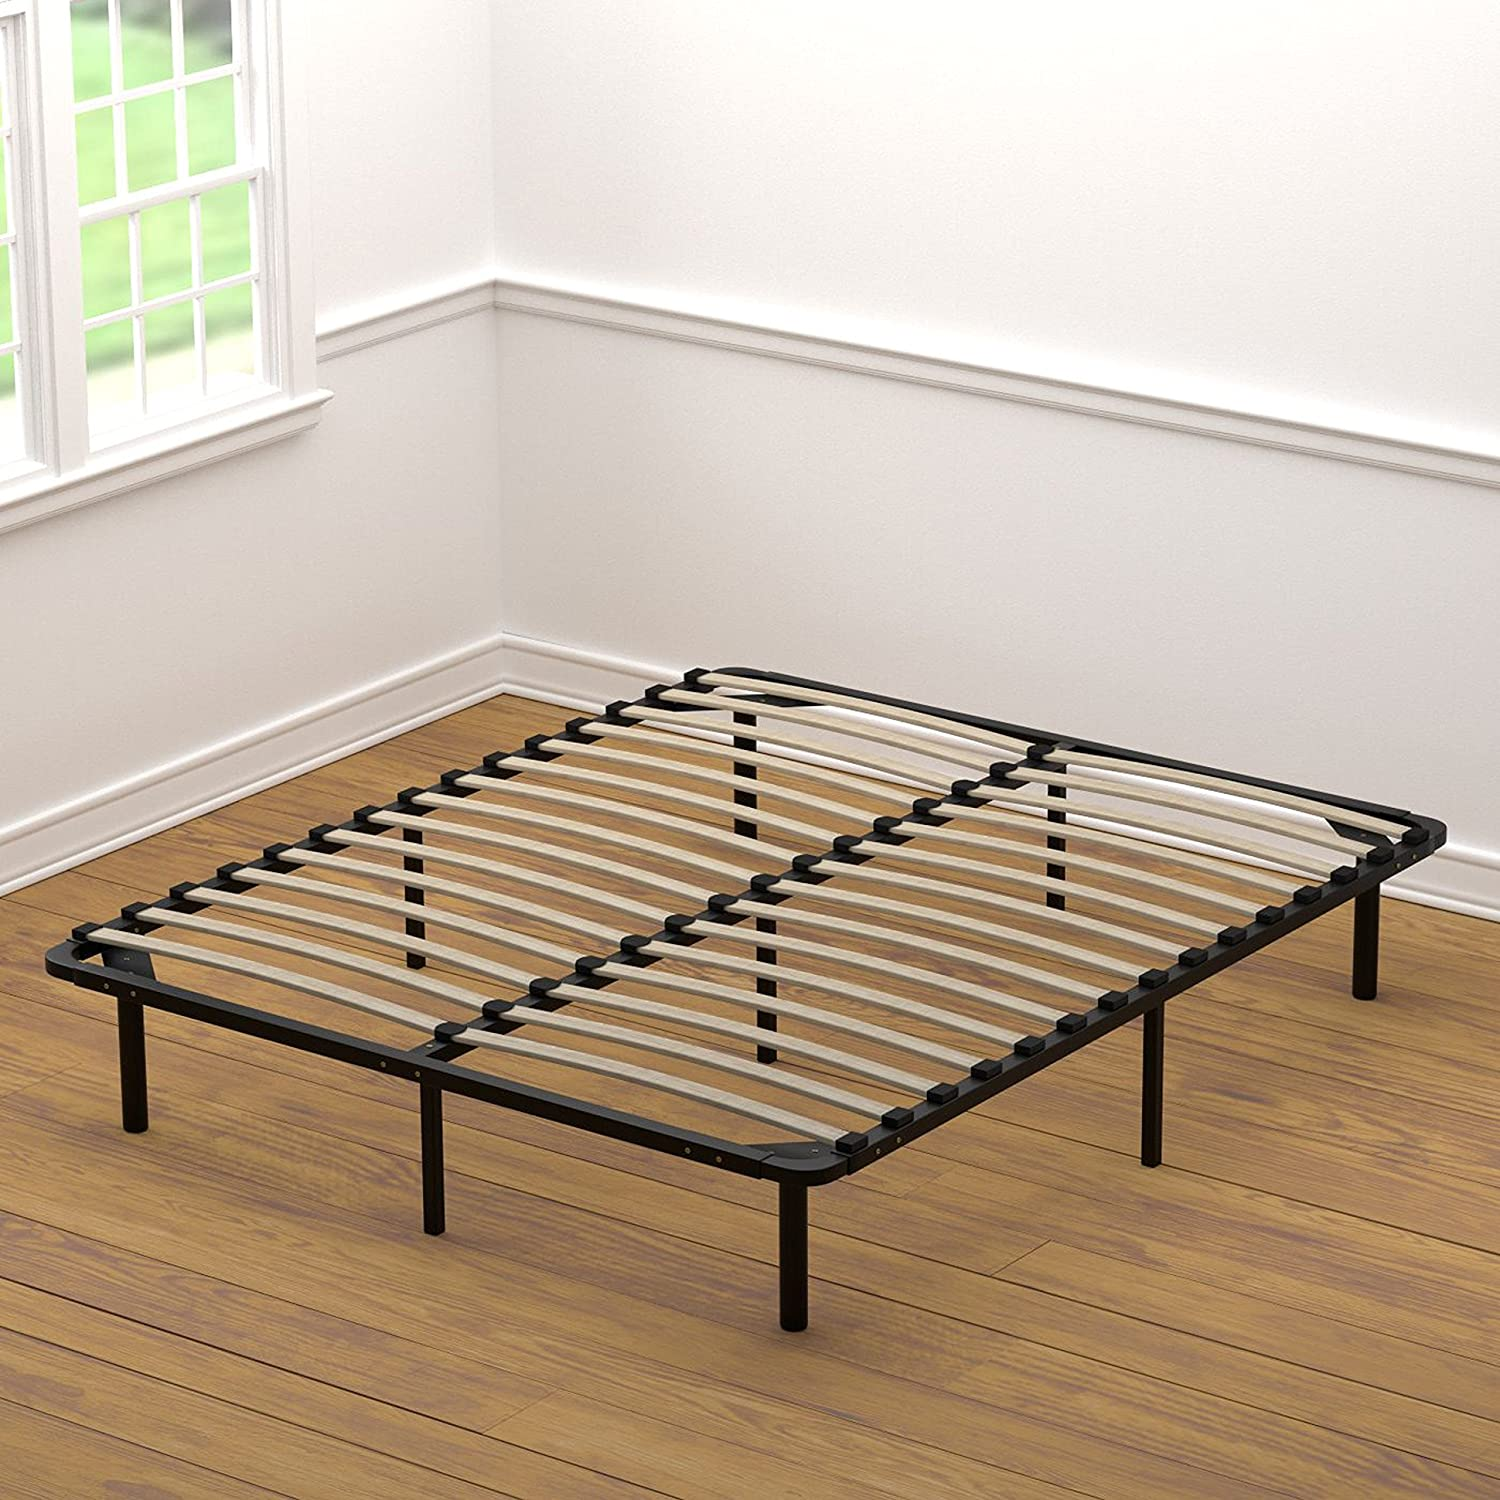 handy living wood slat bed frame queen black steel metal mattress holder new - Bed Frames Queen